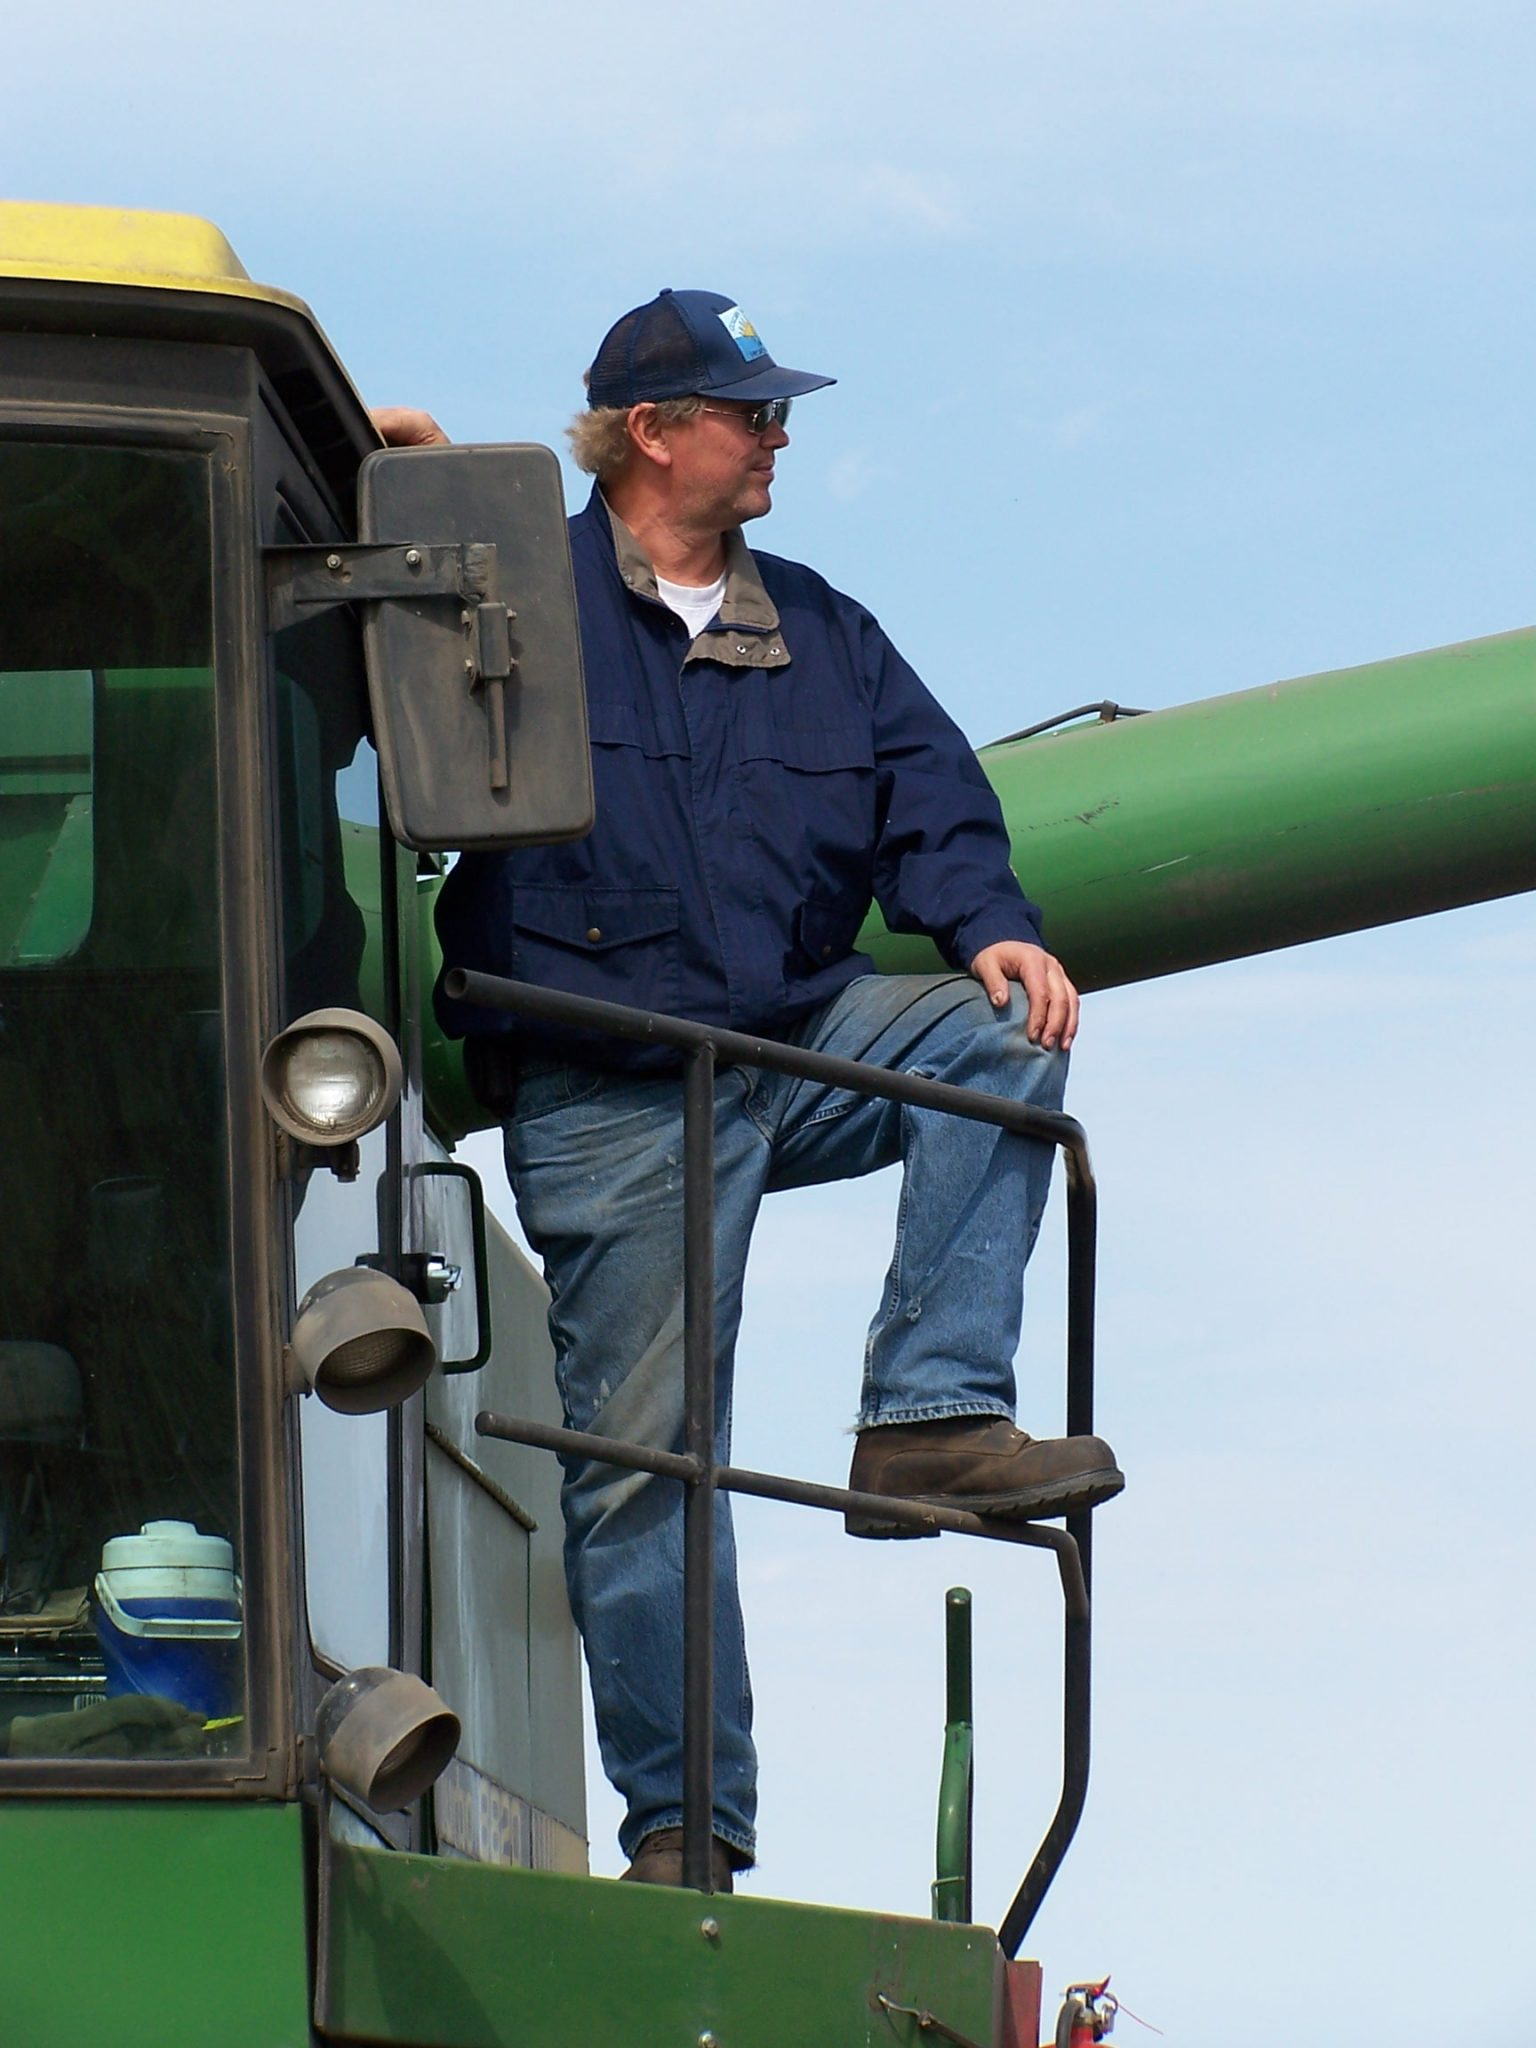 Mark Hylden on John Deere combine